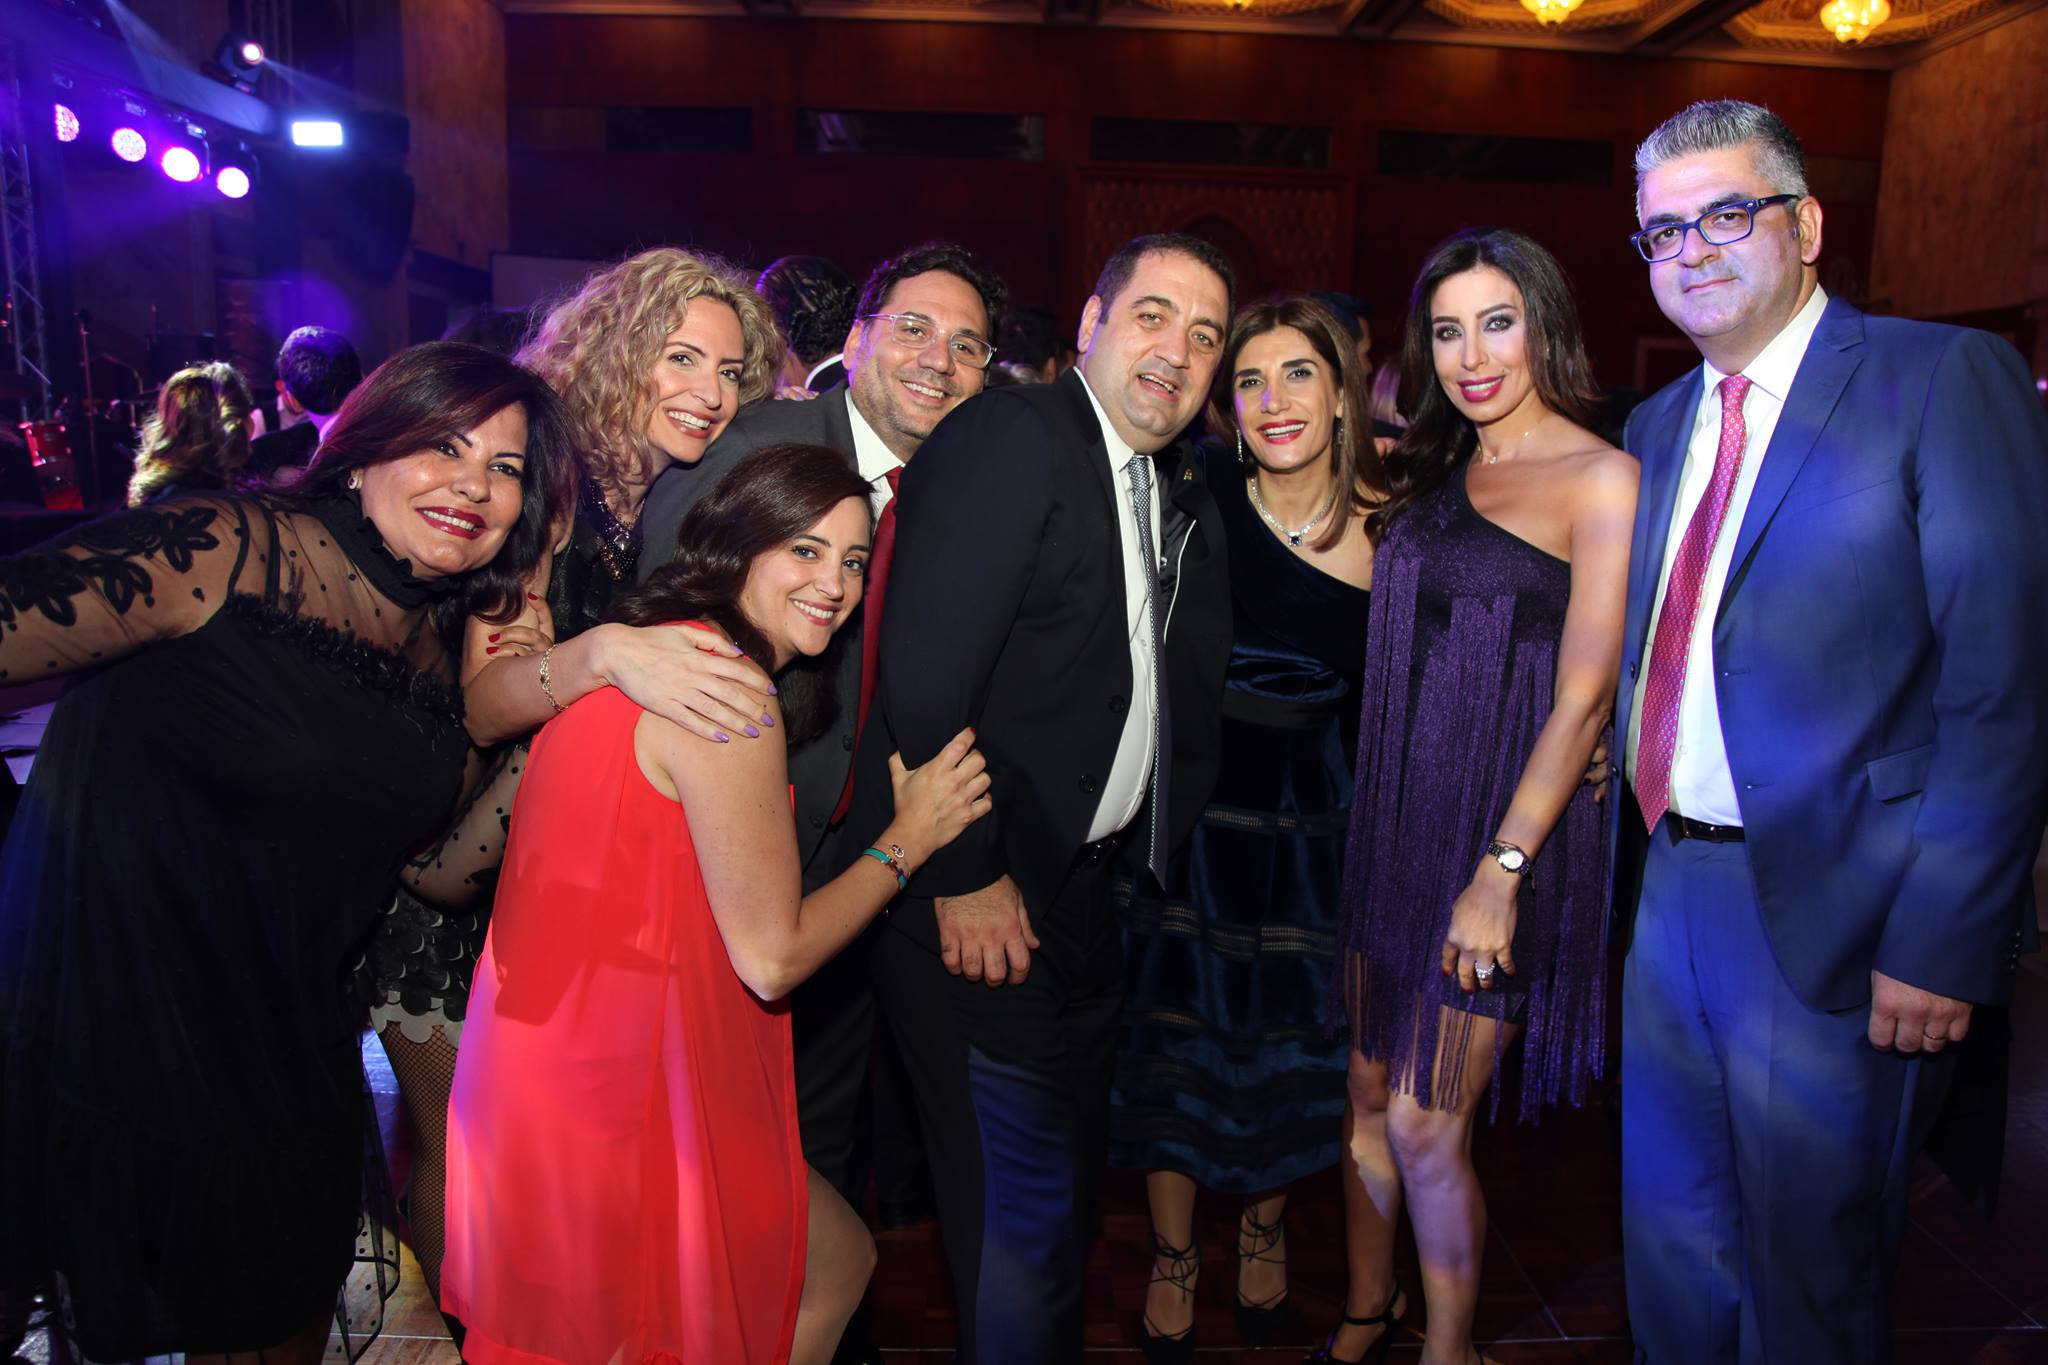 Abu Dhabi chapter 25th gala dinner.jpg